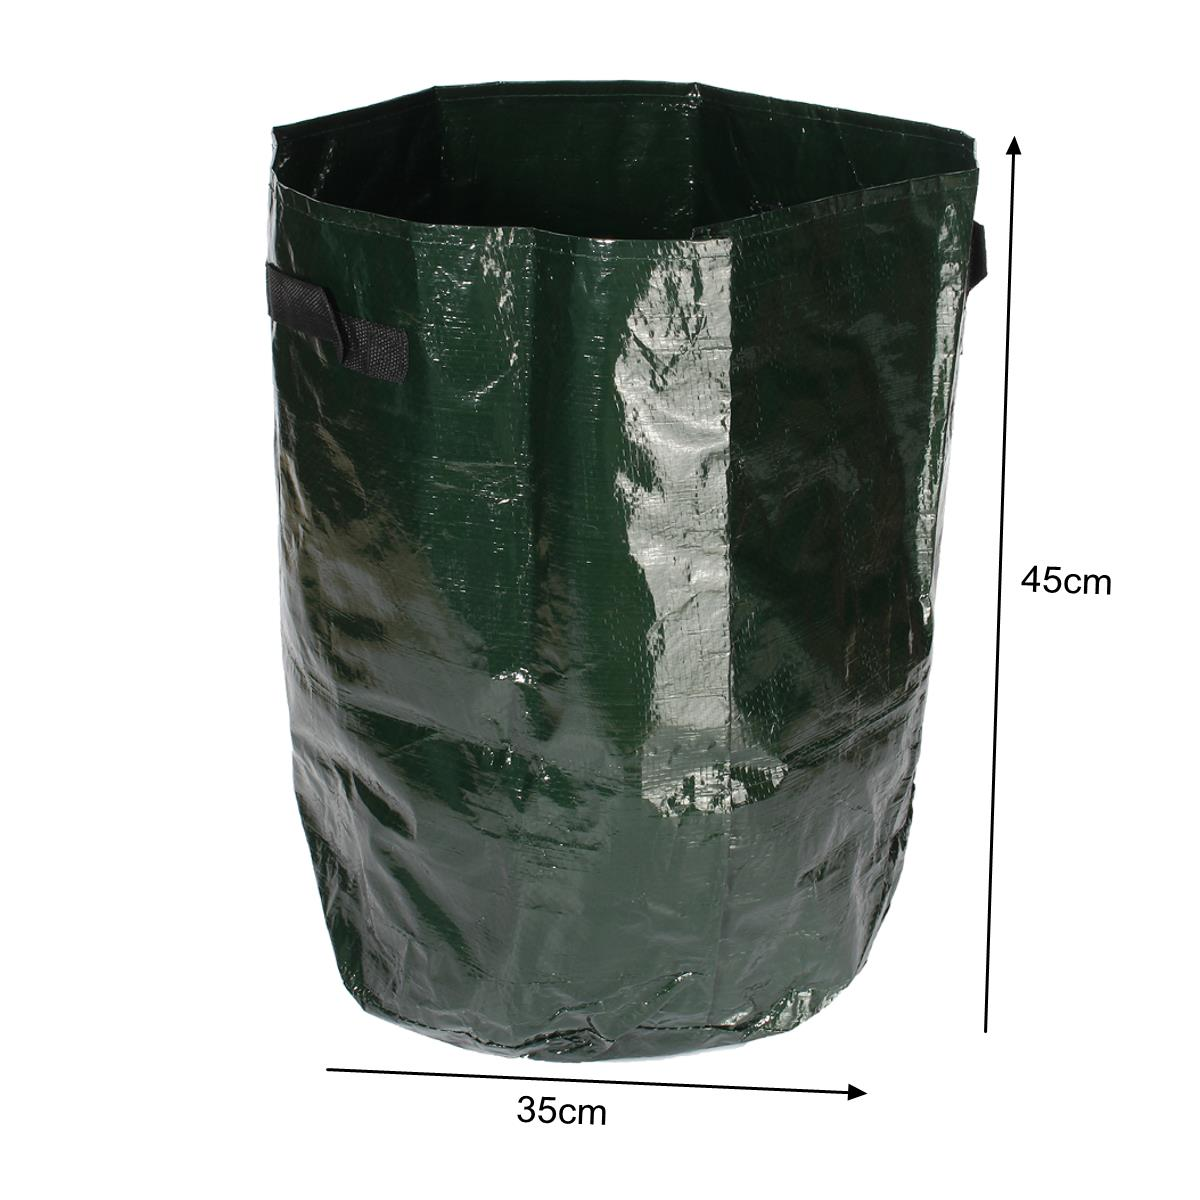 2pcs Graden Vegetable Grow Planter Balcony Potato Cucumber Planting Bags